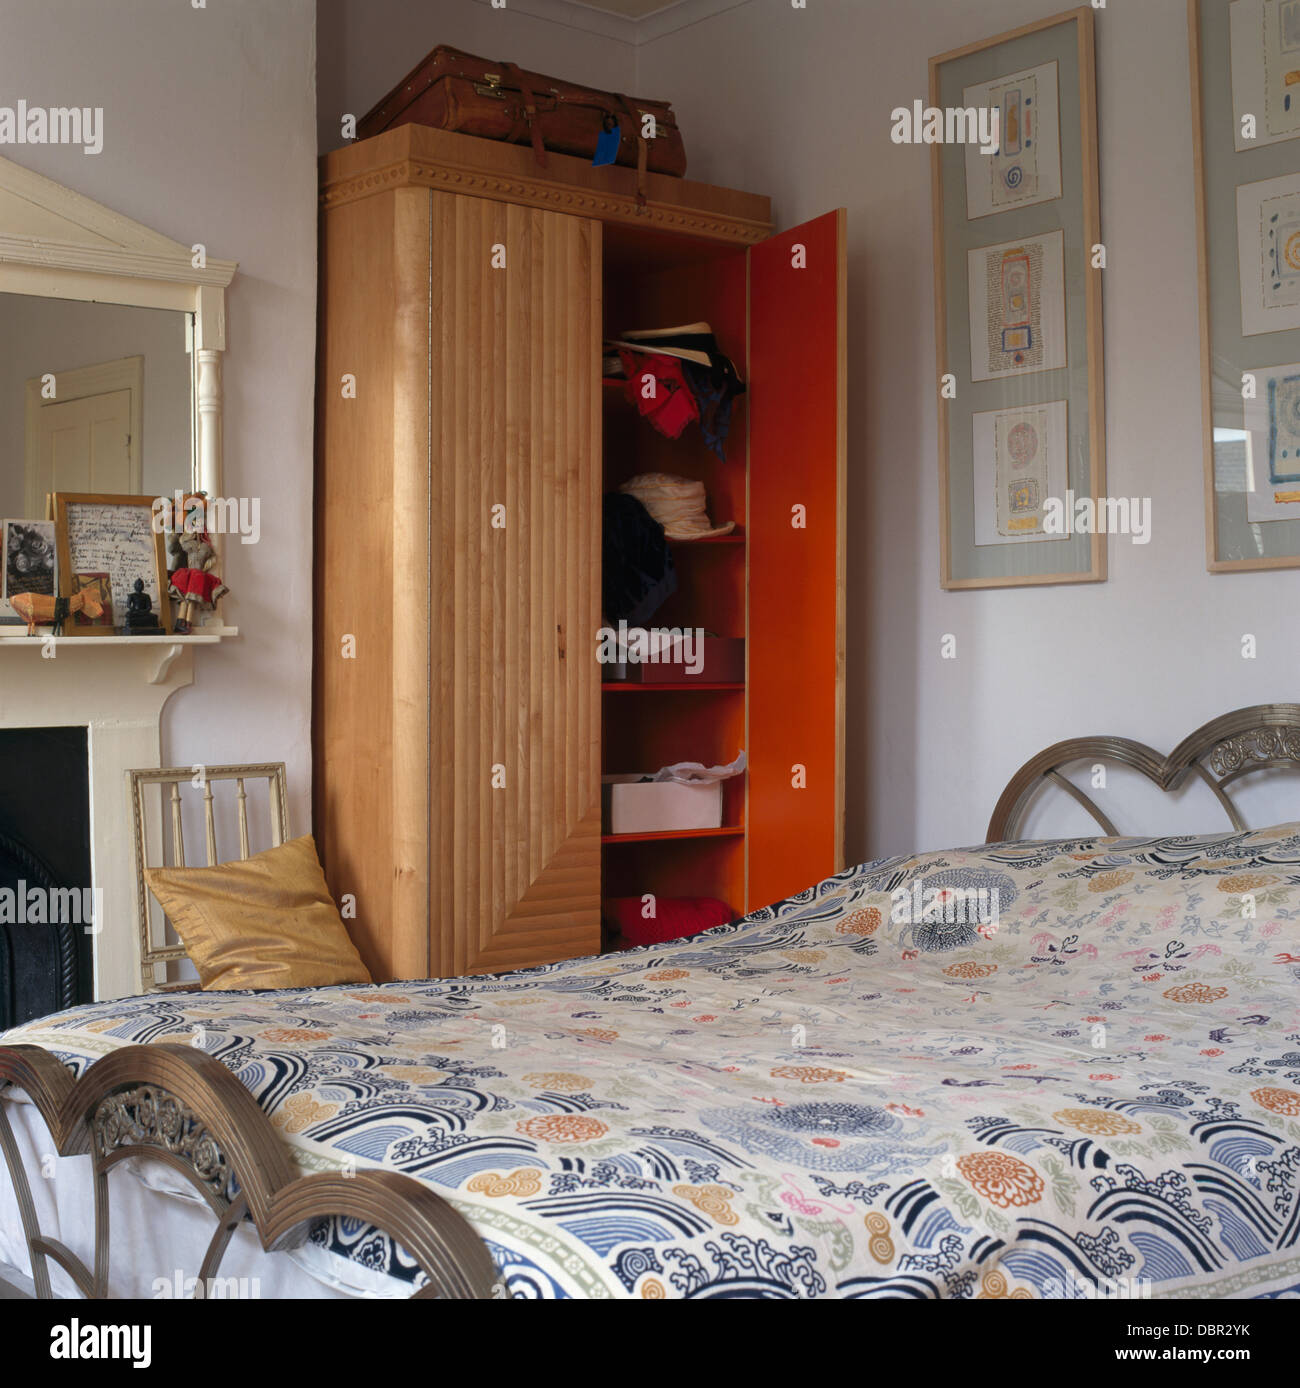 Wardrobe in alcove beside fireplace in small bedroom with patterned ...